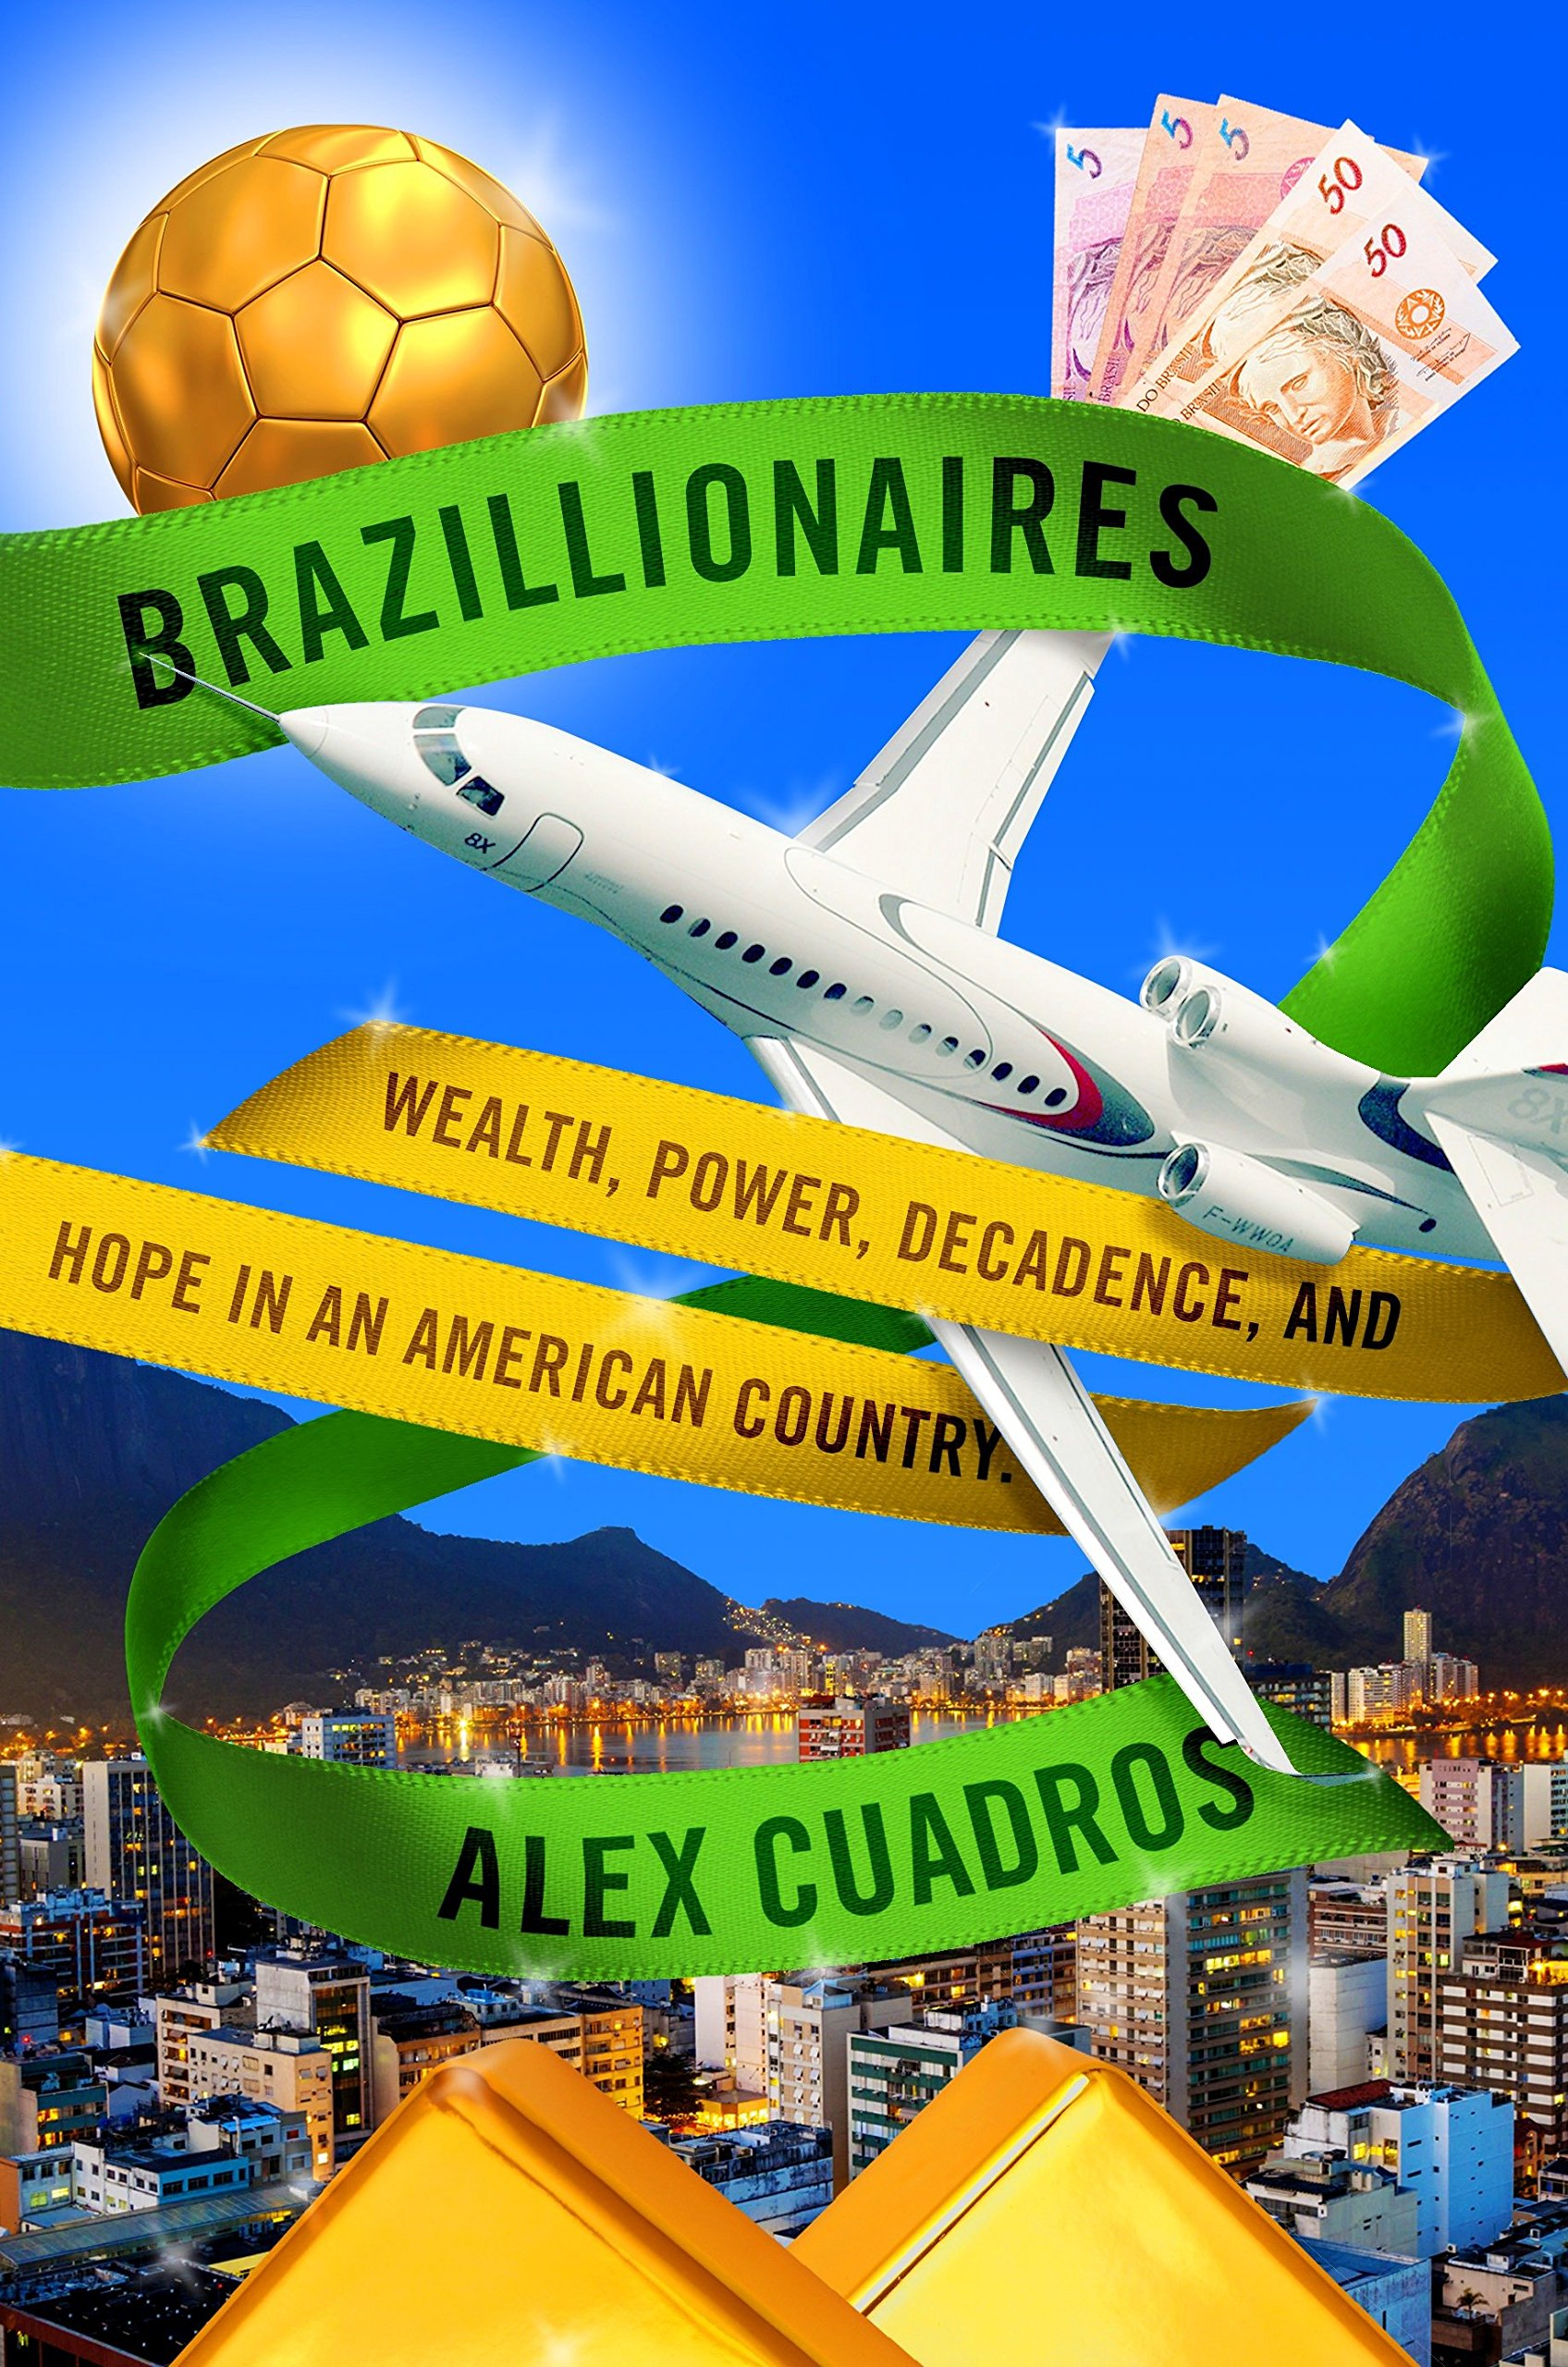 Brazillionaires: Wealth, Power, Decadence, and Hope in an American ...